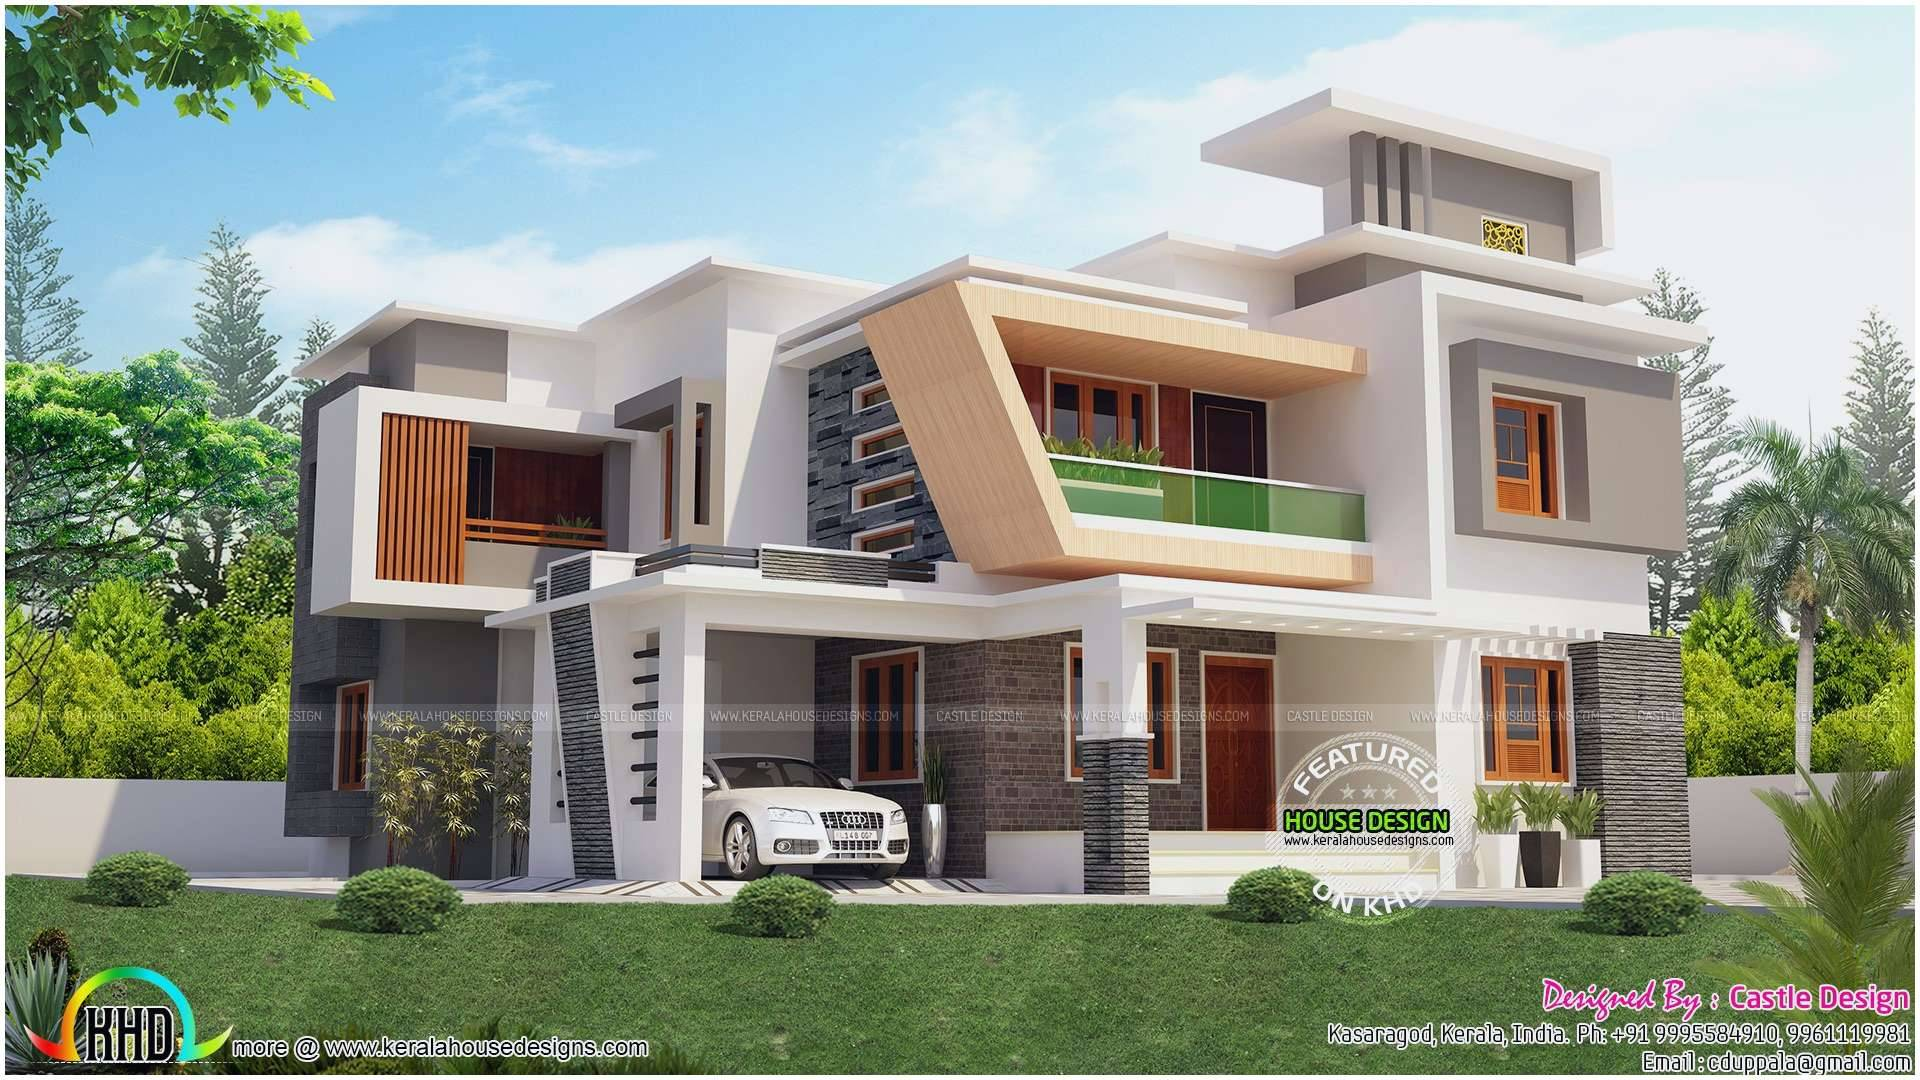 small house exterior design ideas attractive modern design homes in modern home designs new home design village homes village homes 0d inspirational attractive modern design homes in modern